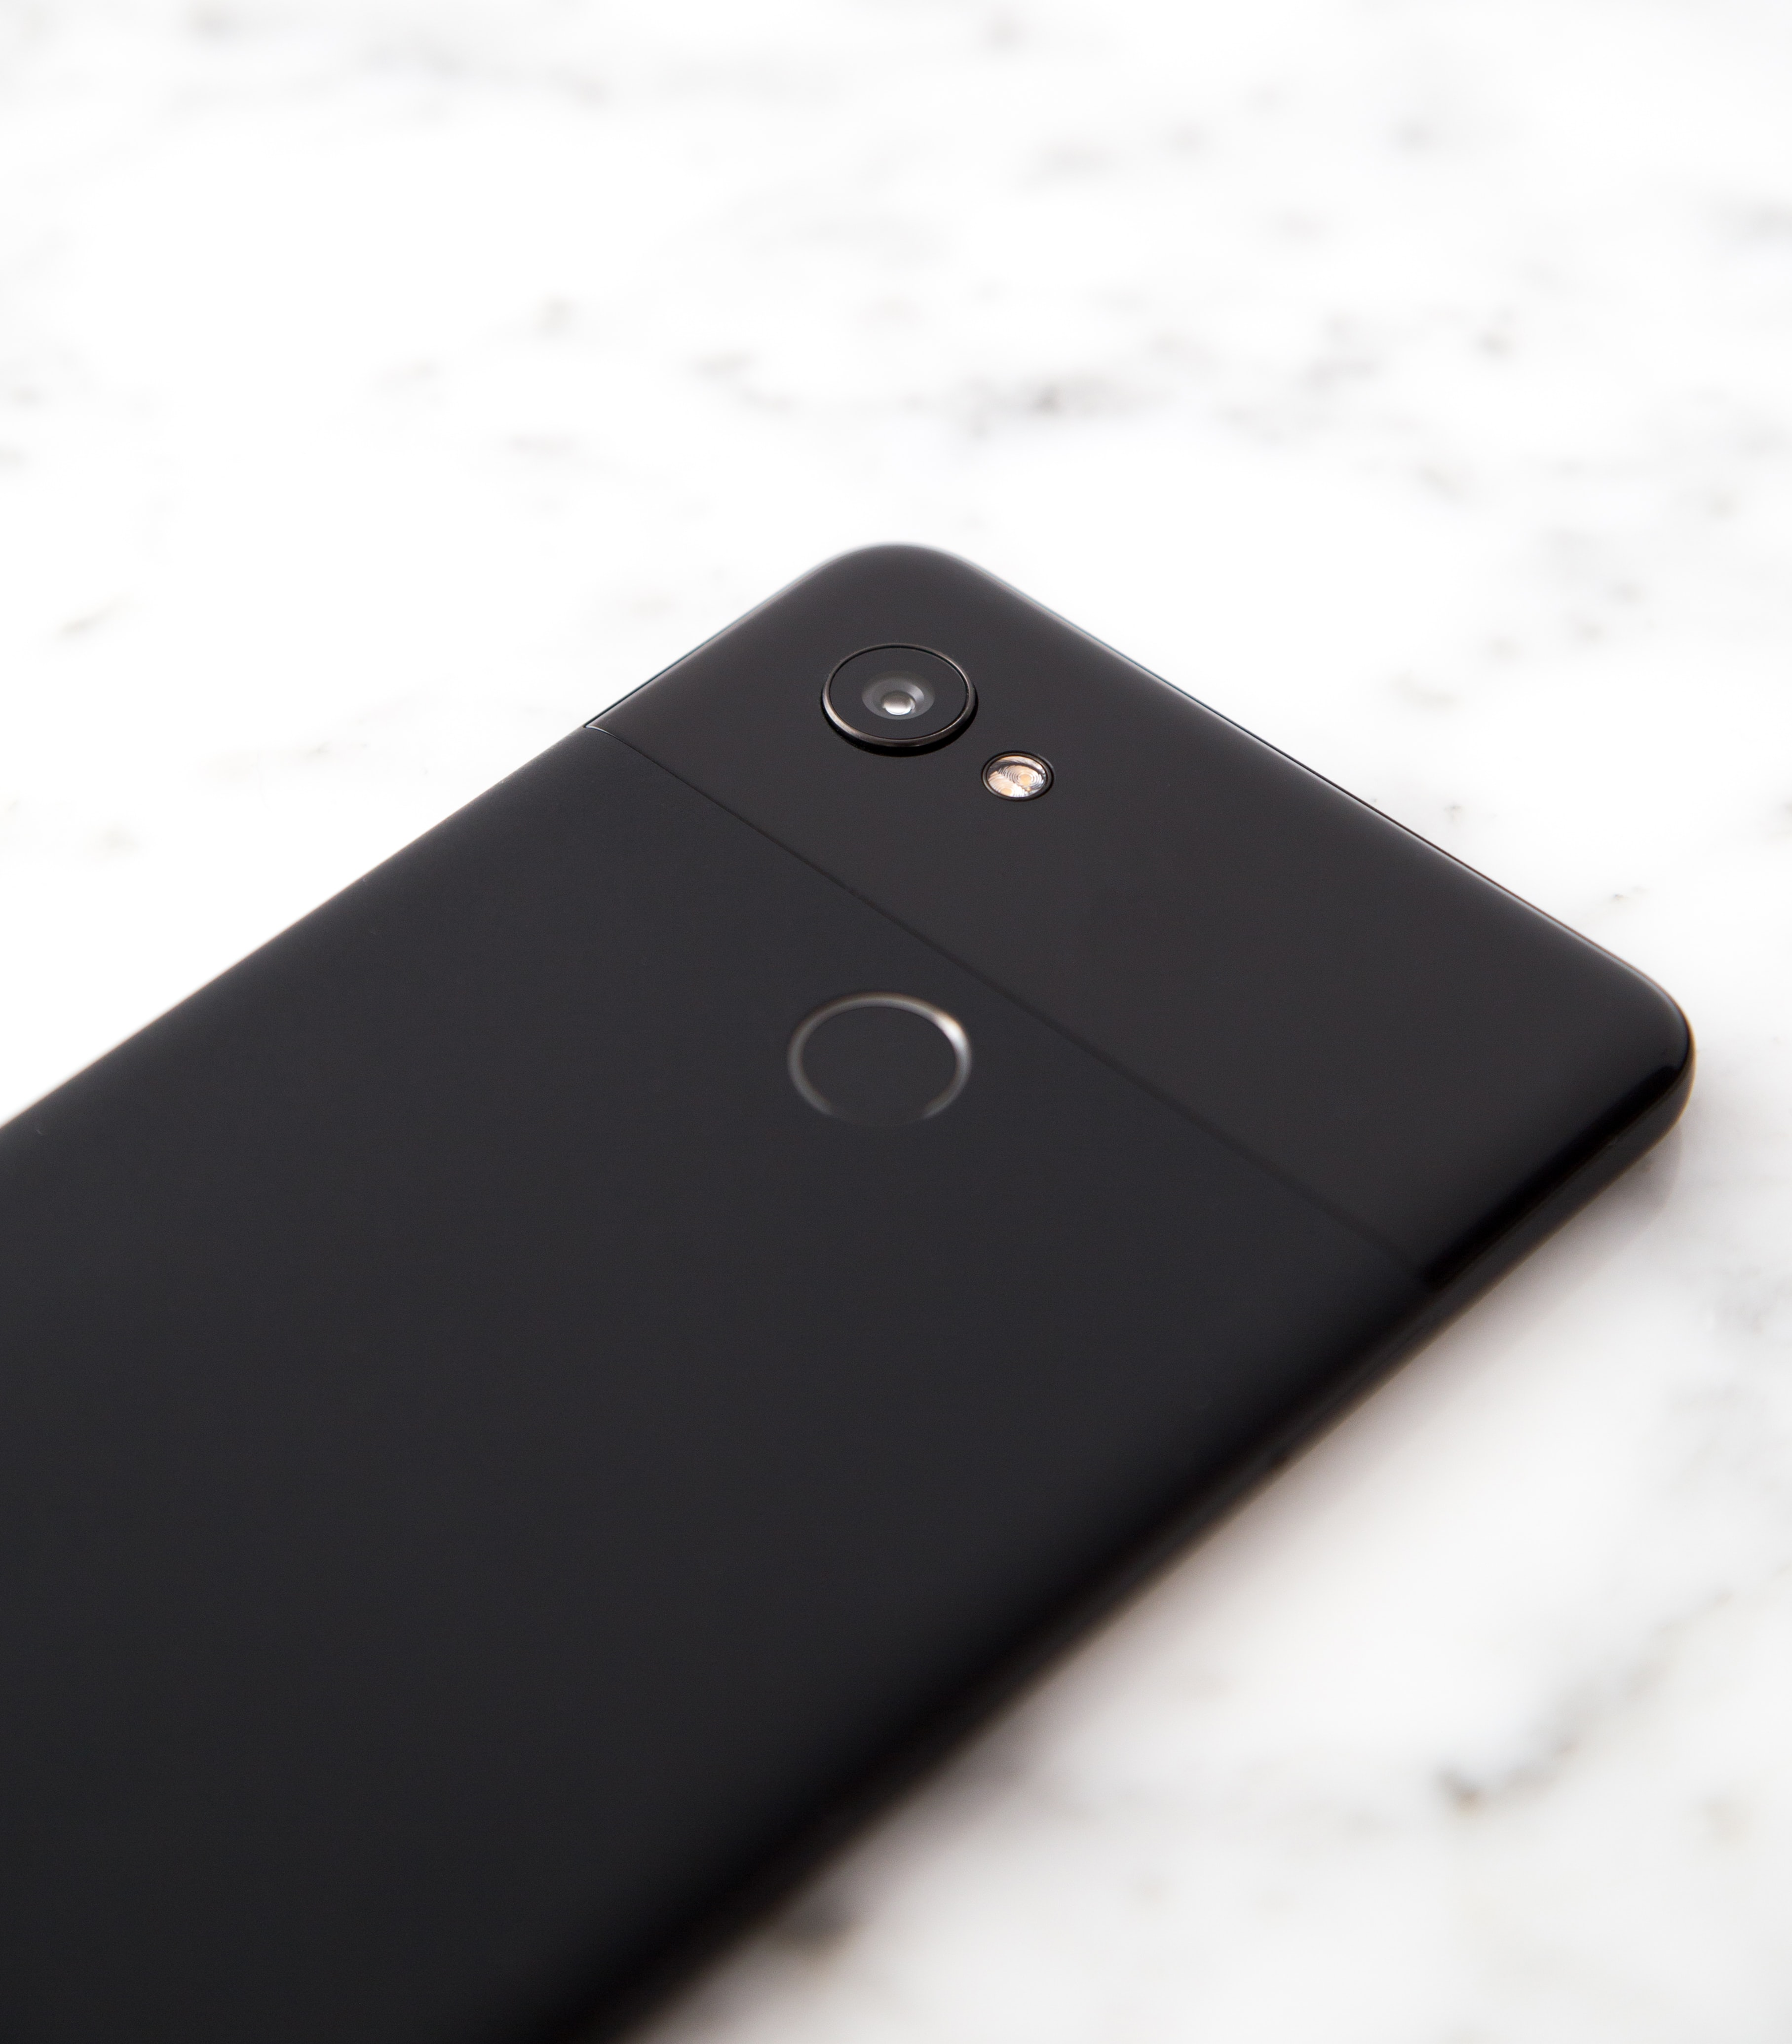 black Android smartphone on gray surface